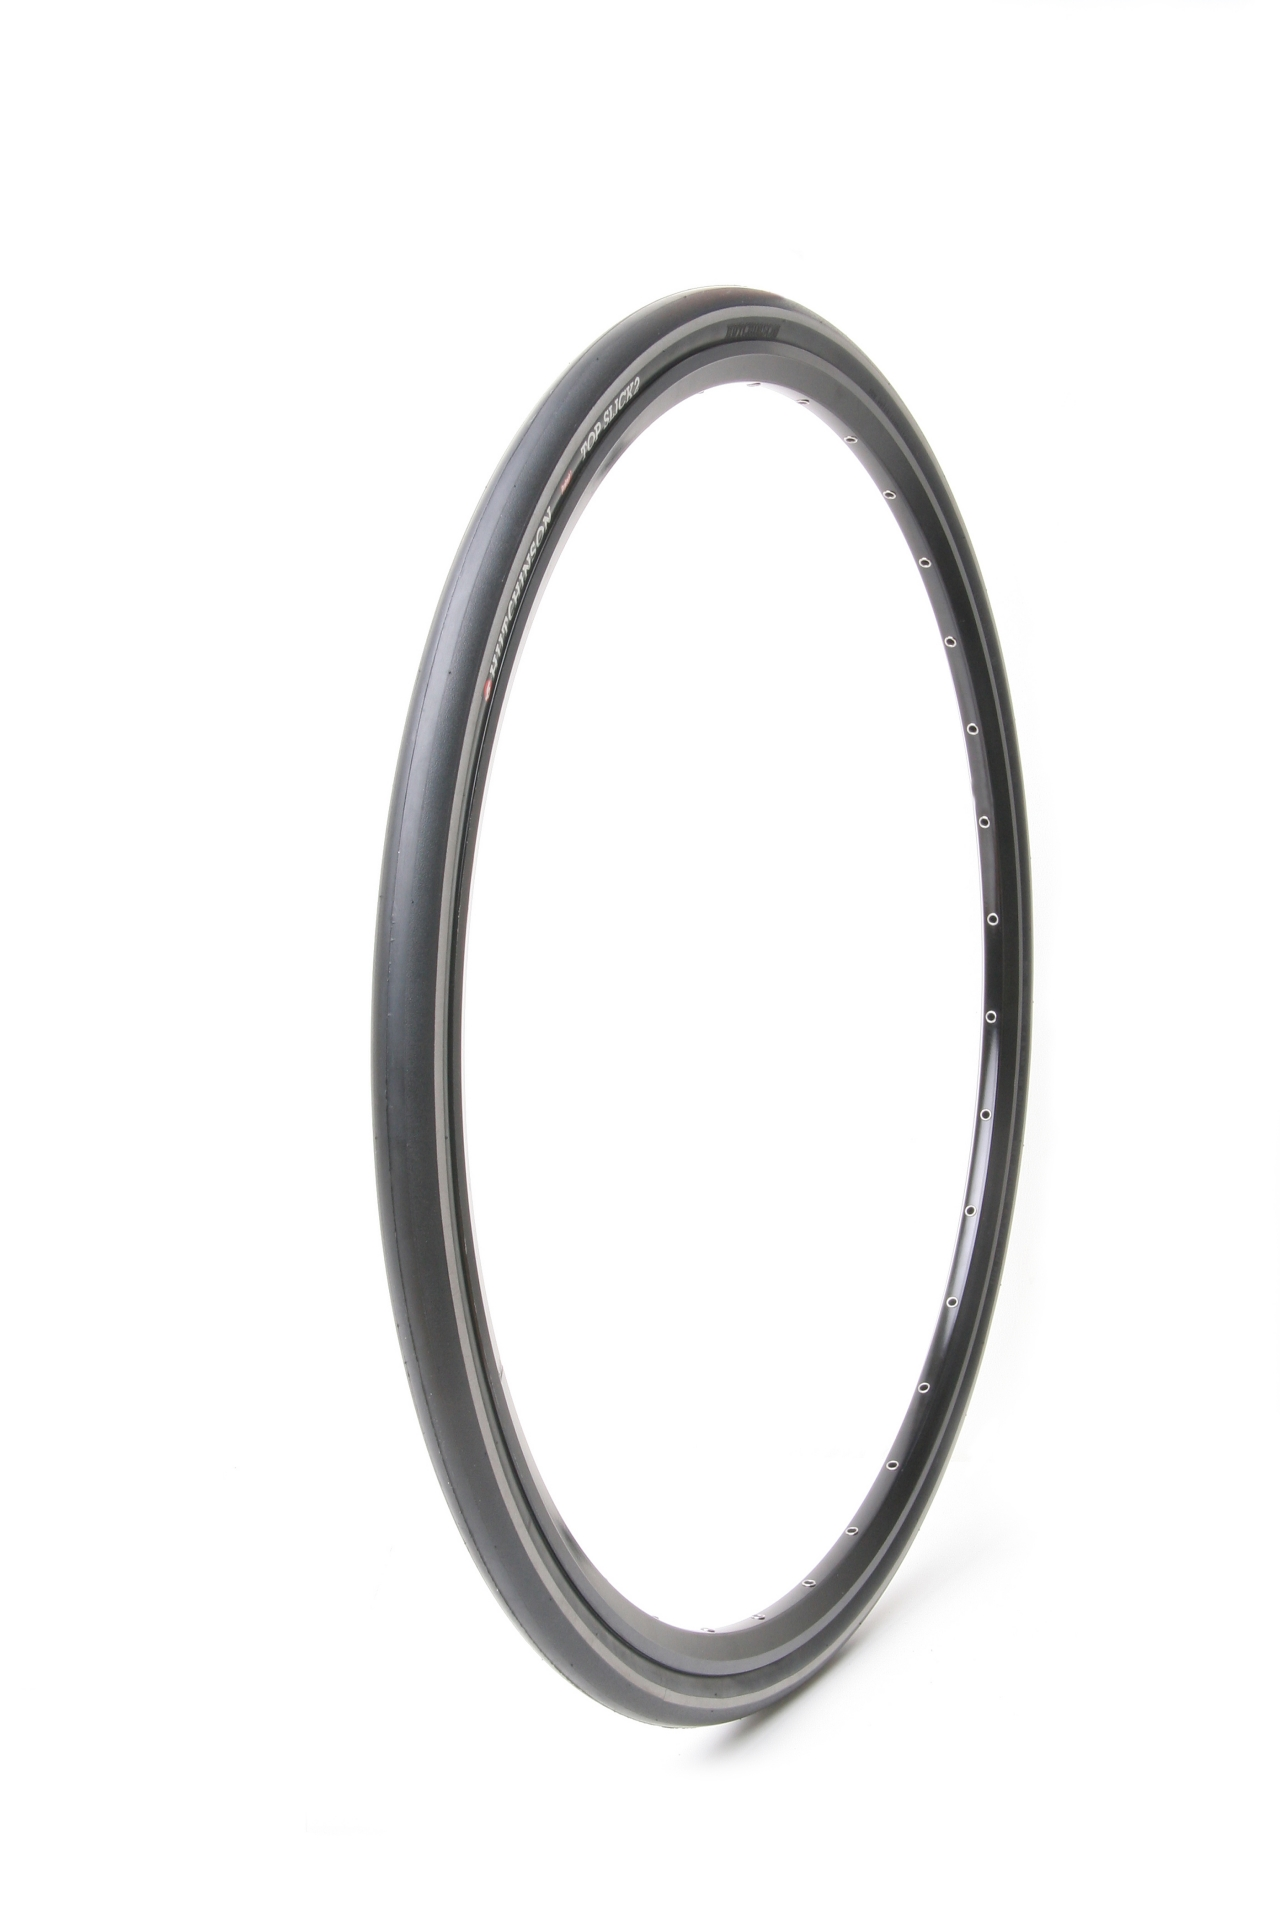 Pneu 26 x 1.20 Hutchinson Top Slick 2 (TT - Protect'air - TR)